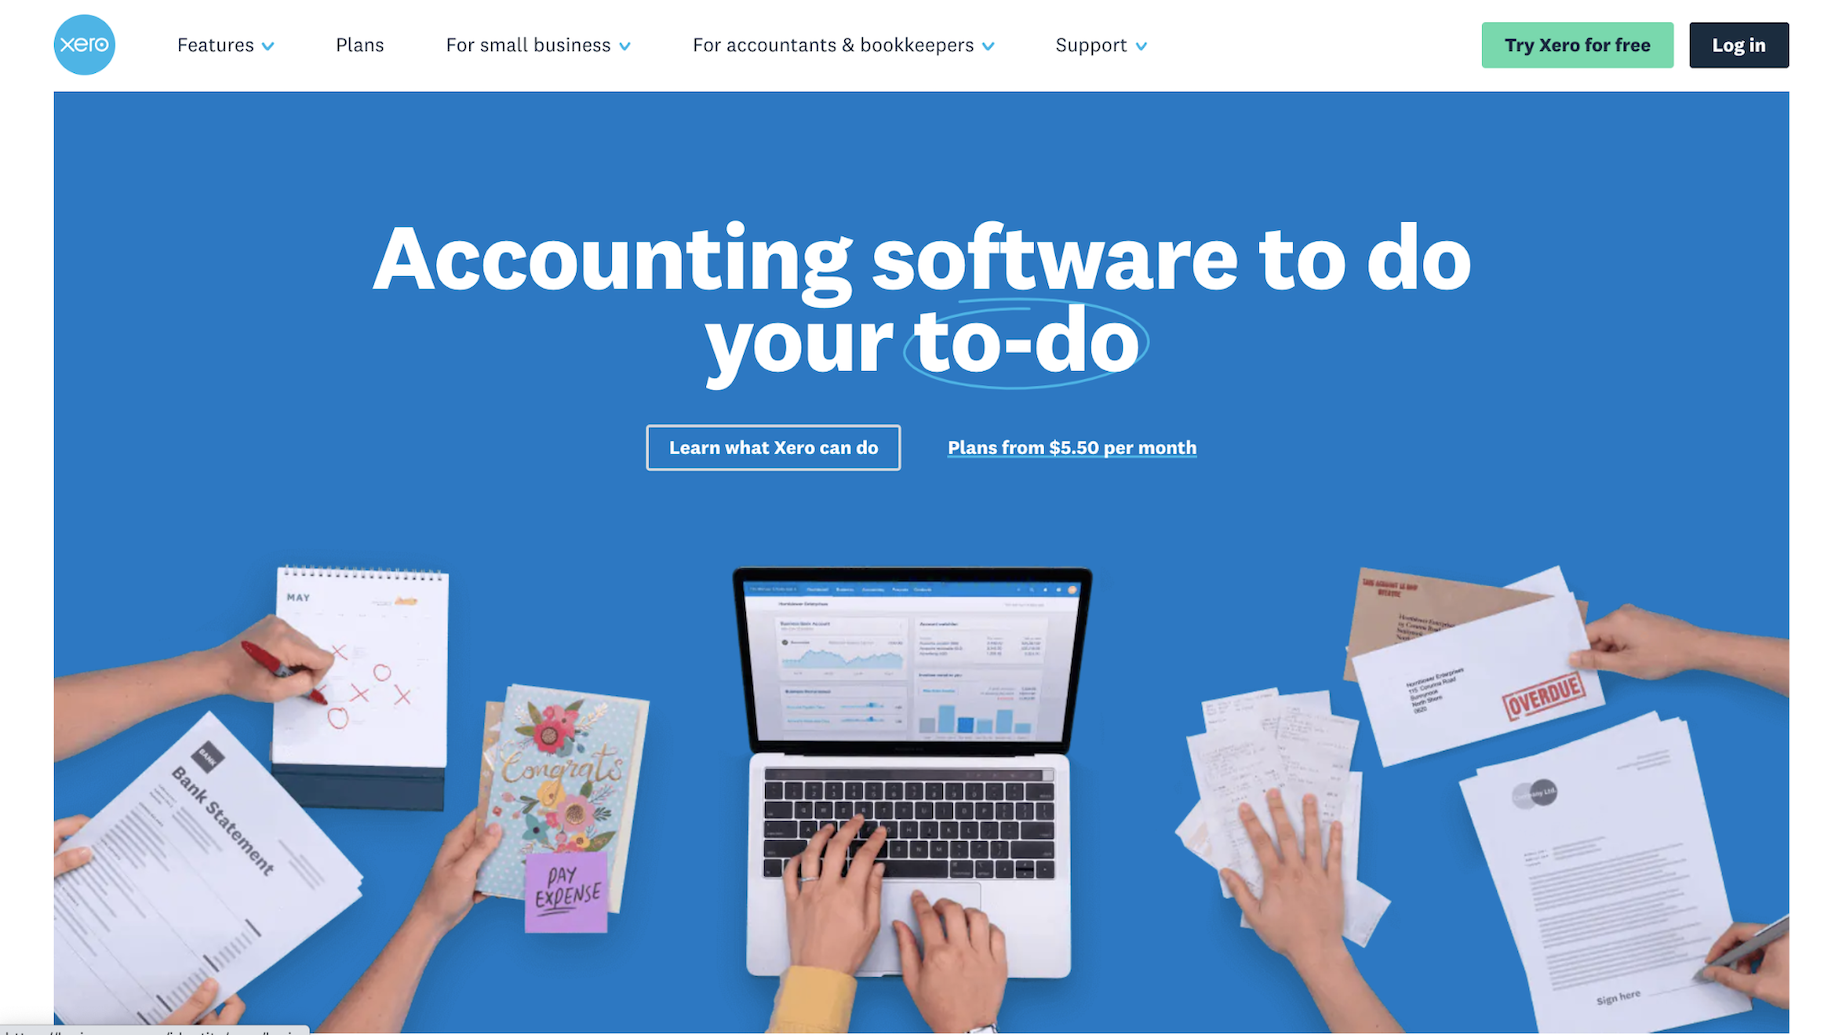 Tools for Accounting: Xero